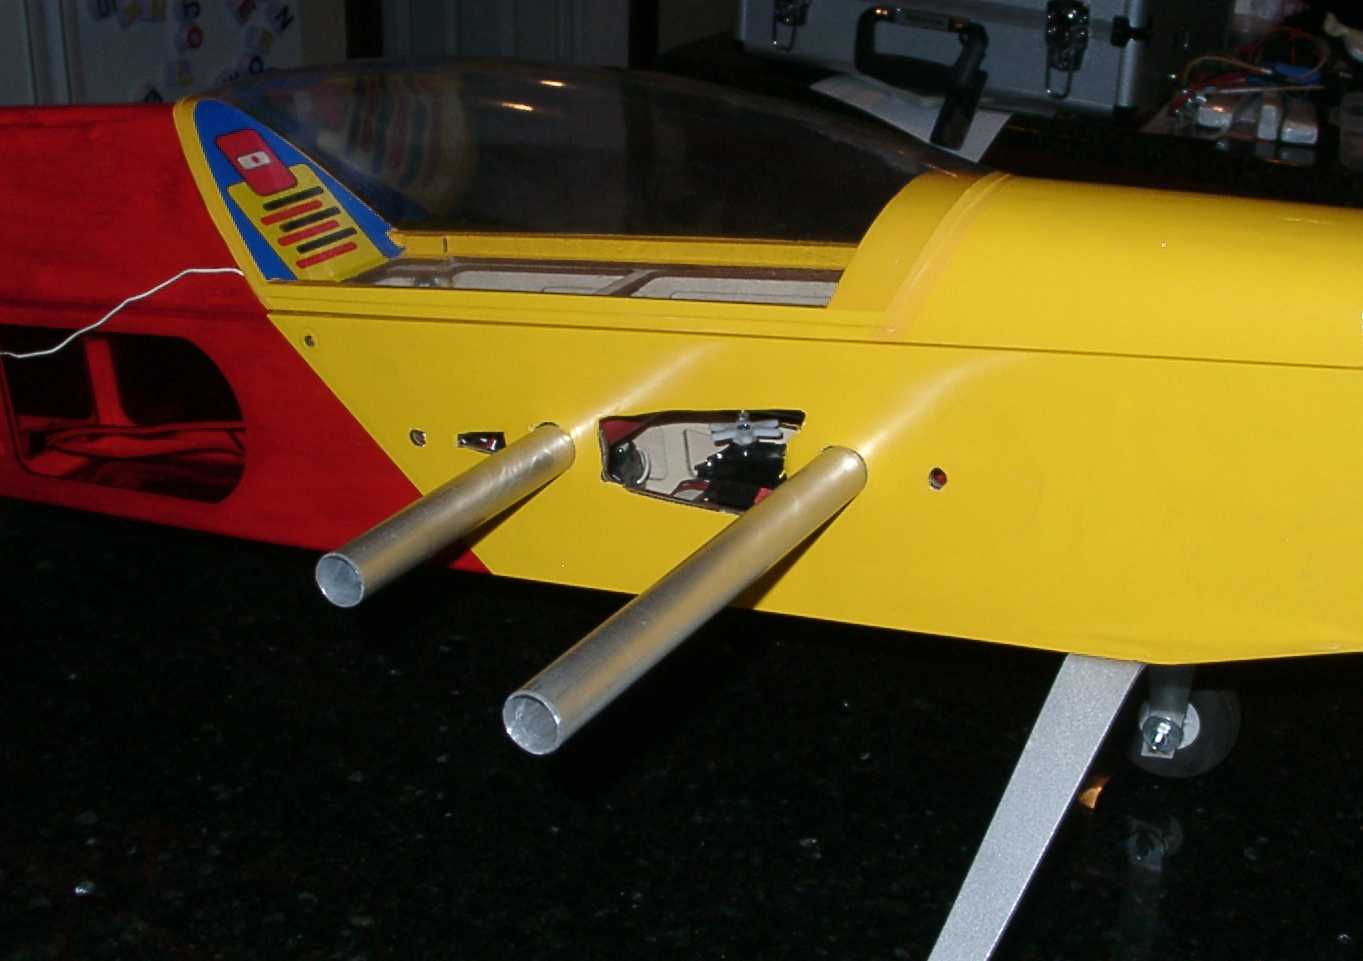 Name: wingtube2.jpg Views: 412 Size: 60.4 KB Description: The wings slide on to two aluminum spars that pass through the fuselage. Two nylon bolts secure each wing panel to the fuselage.